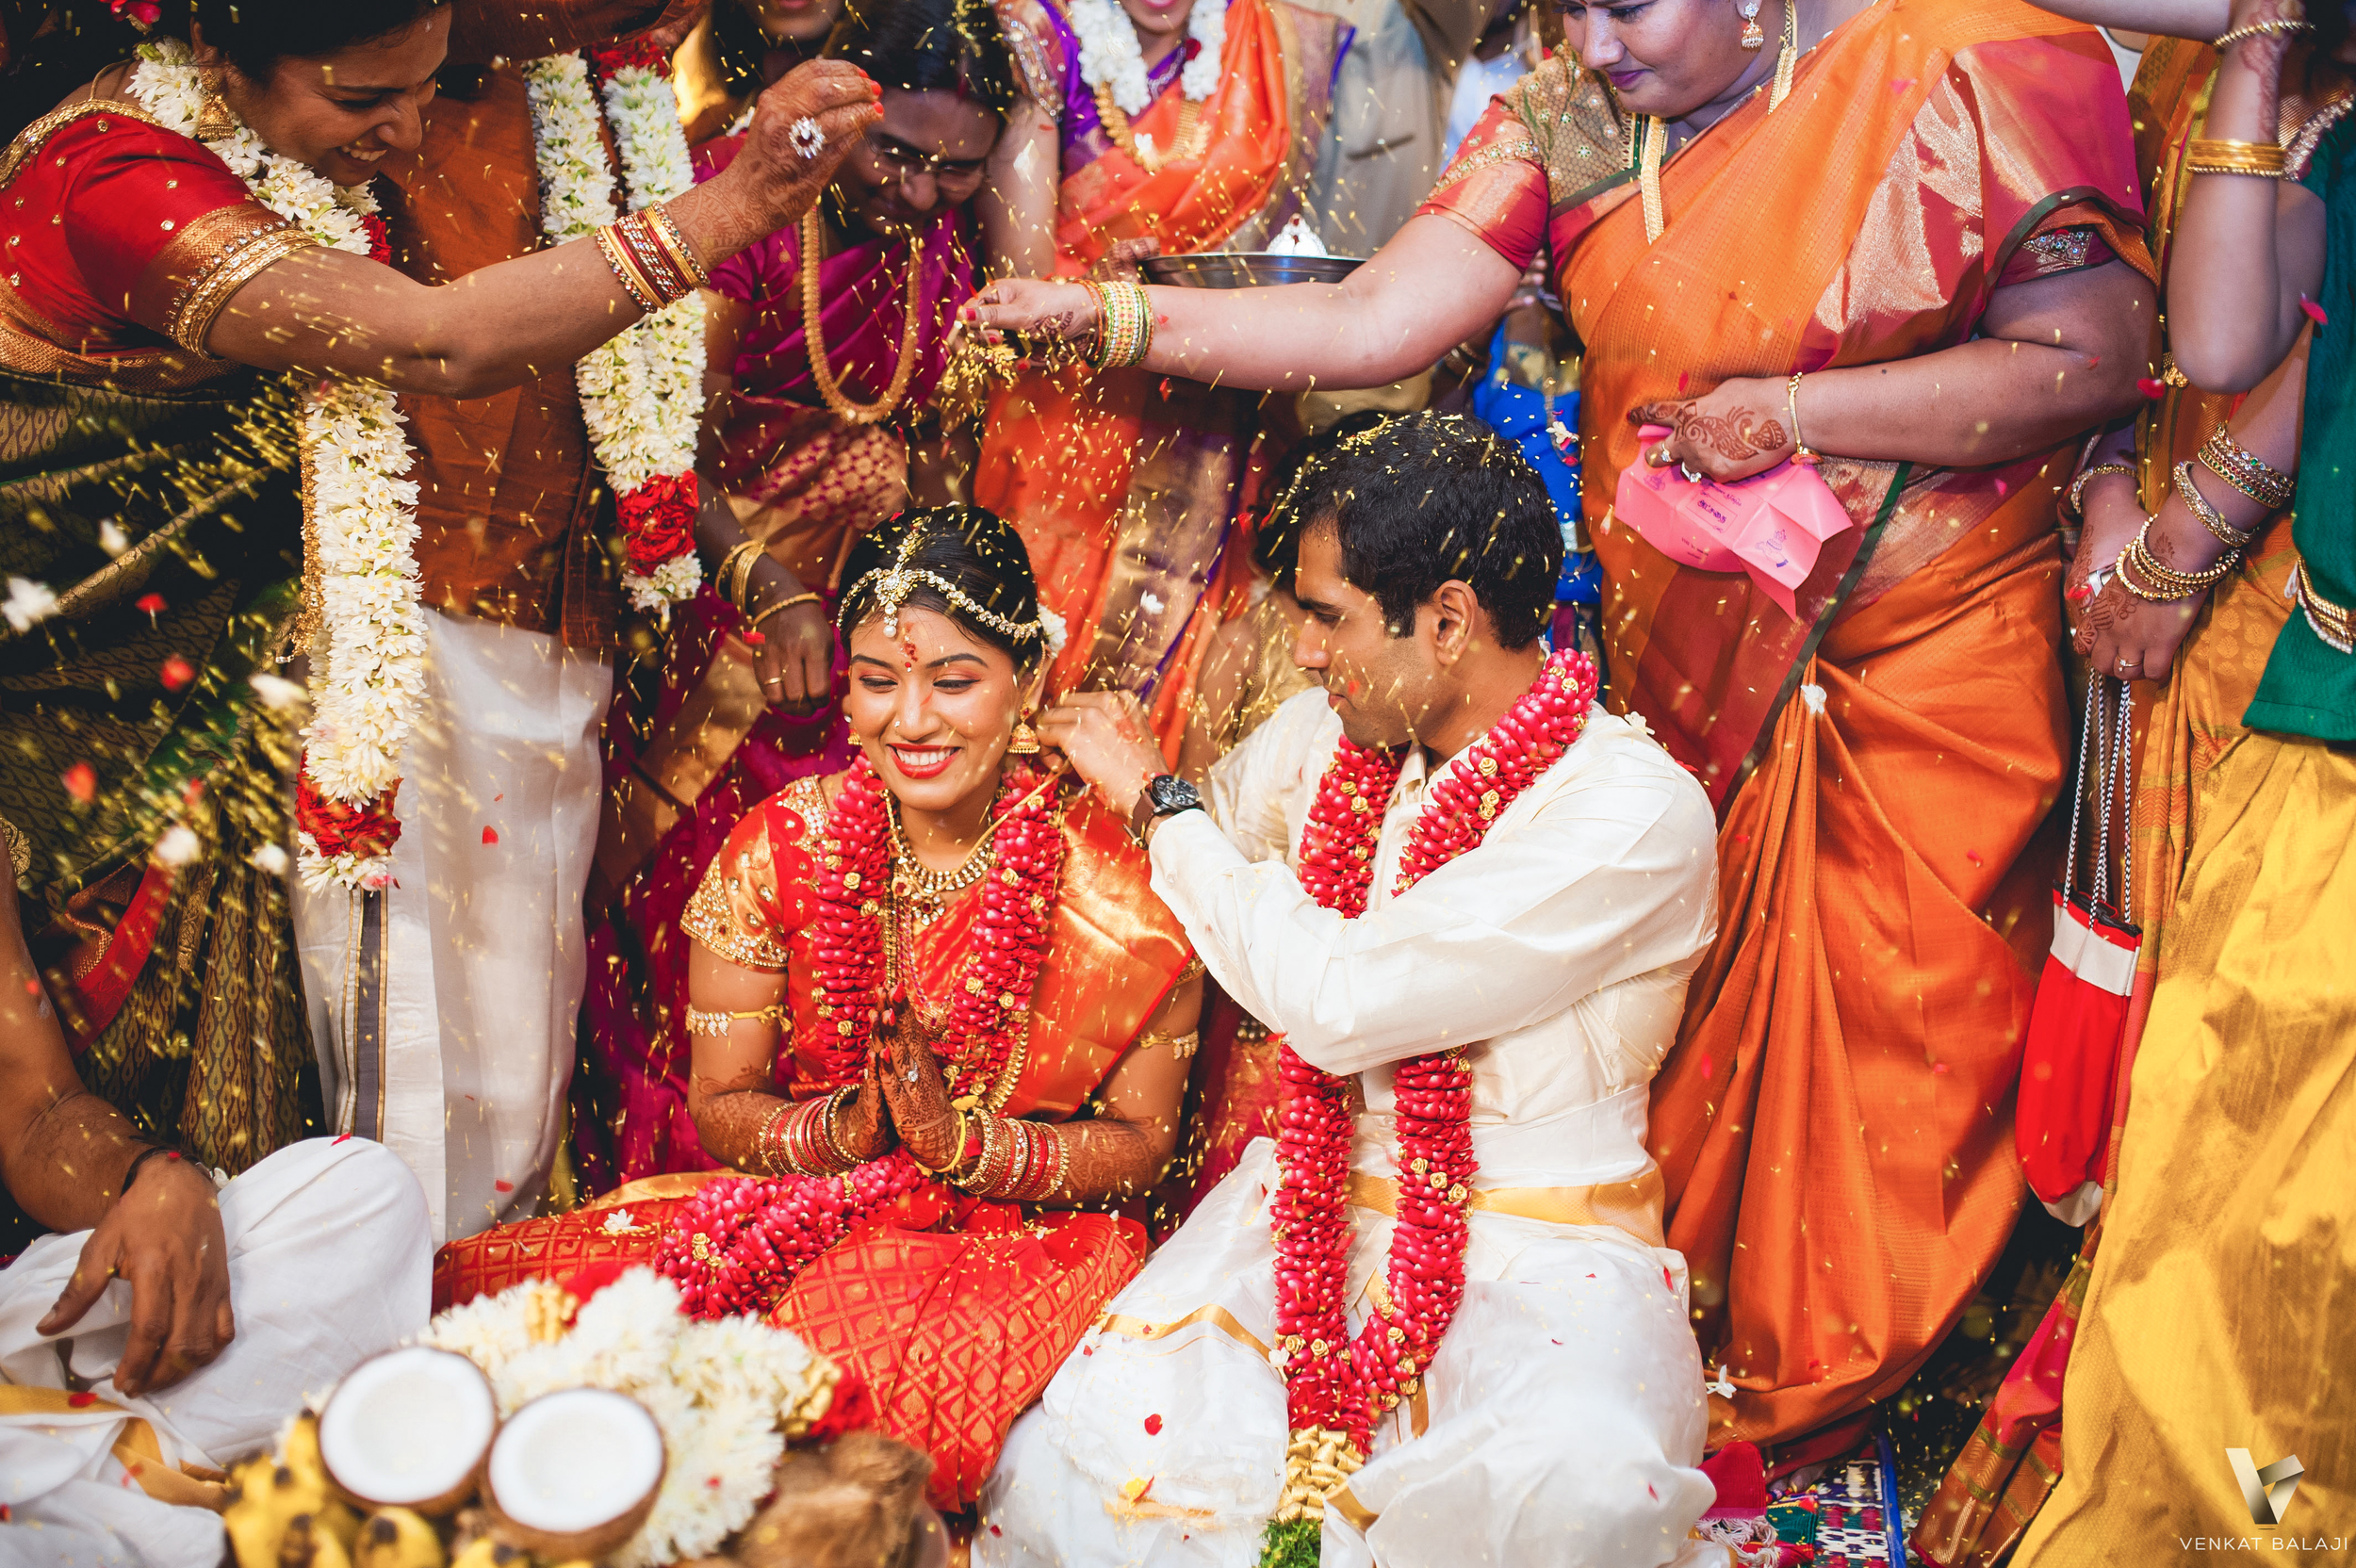 india_wedding_photographer_destination_weddings-15.jpg